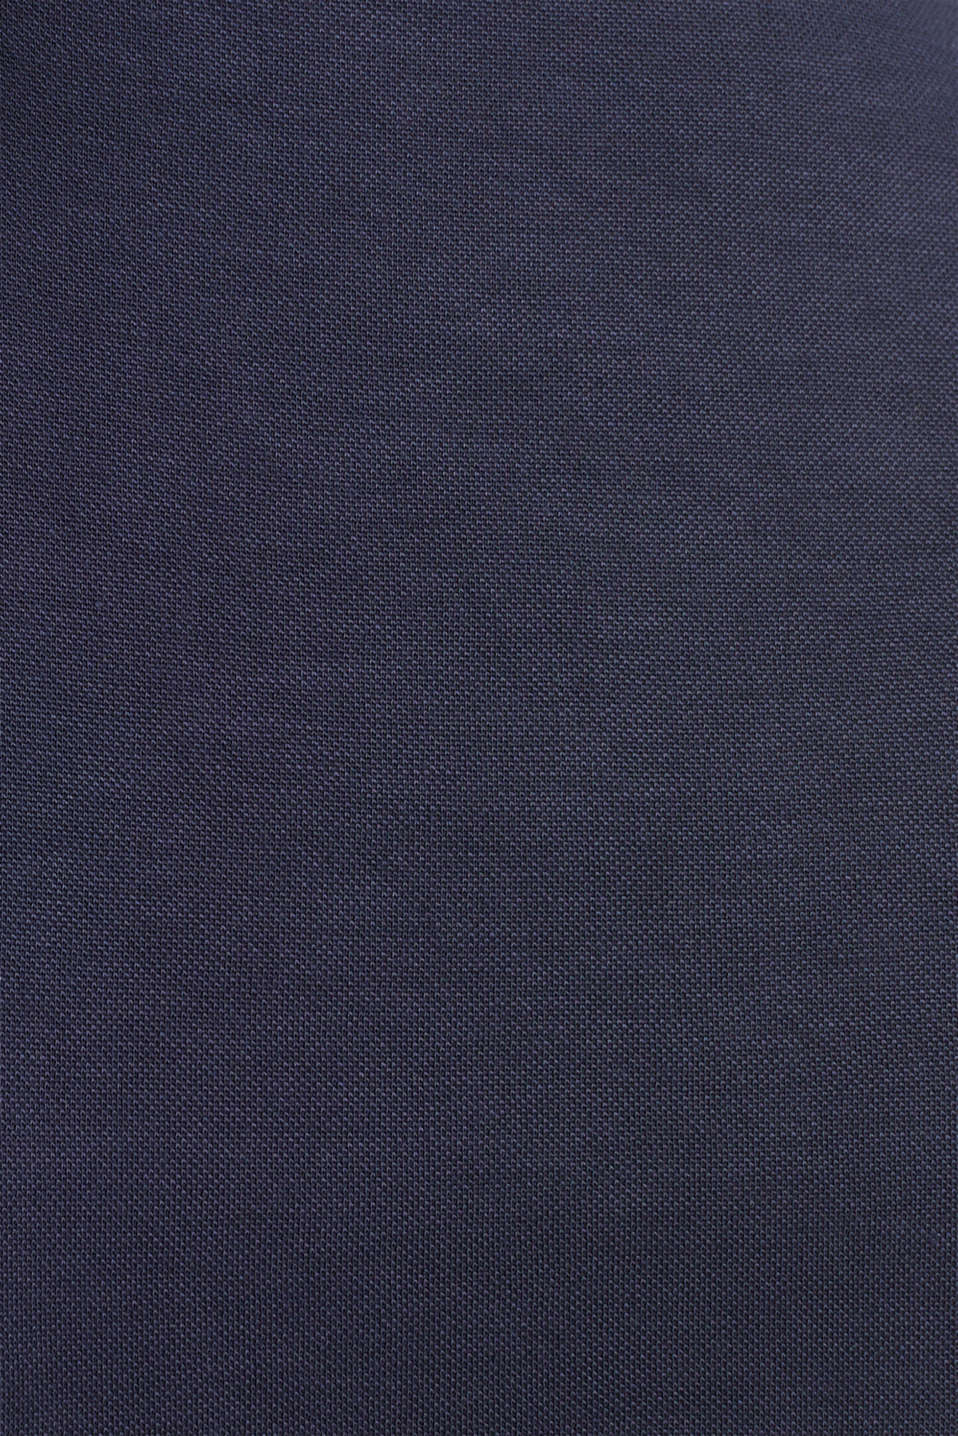 Jersey trousers with a wide leg, NAVY, detail image number 4